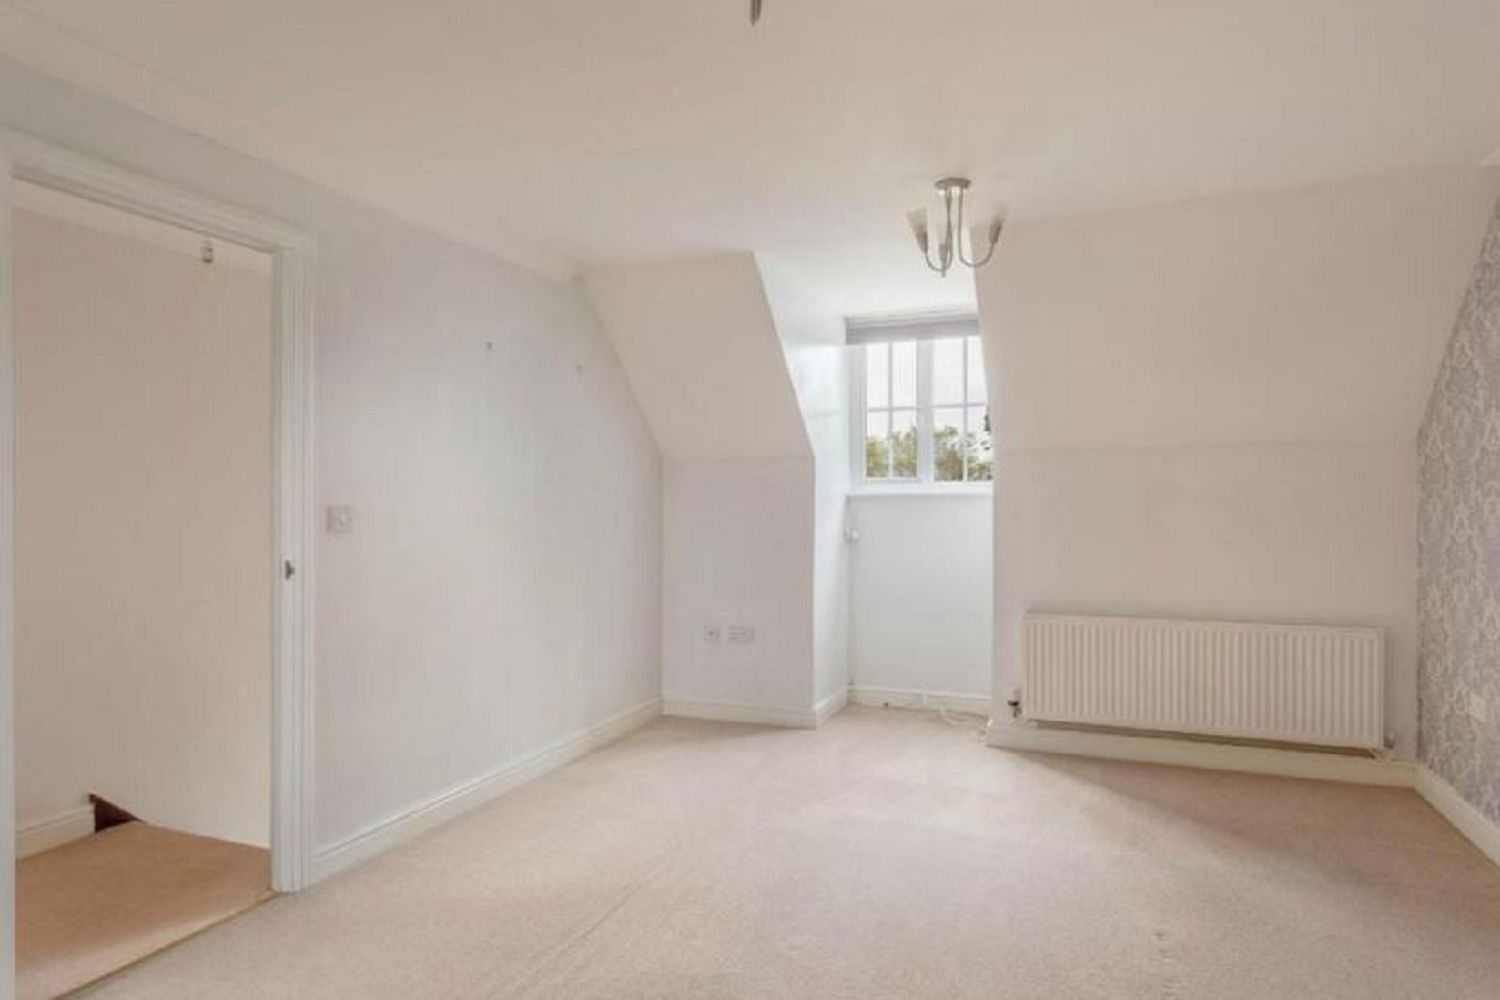 Hurn Grove, Bishop's Stortford, CM23 5DD